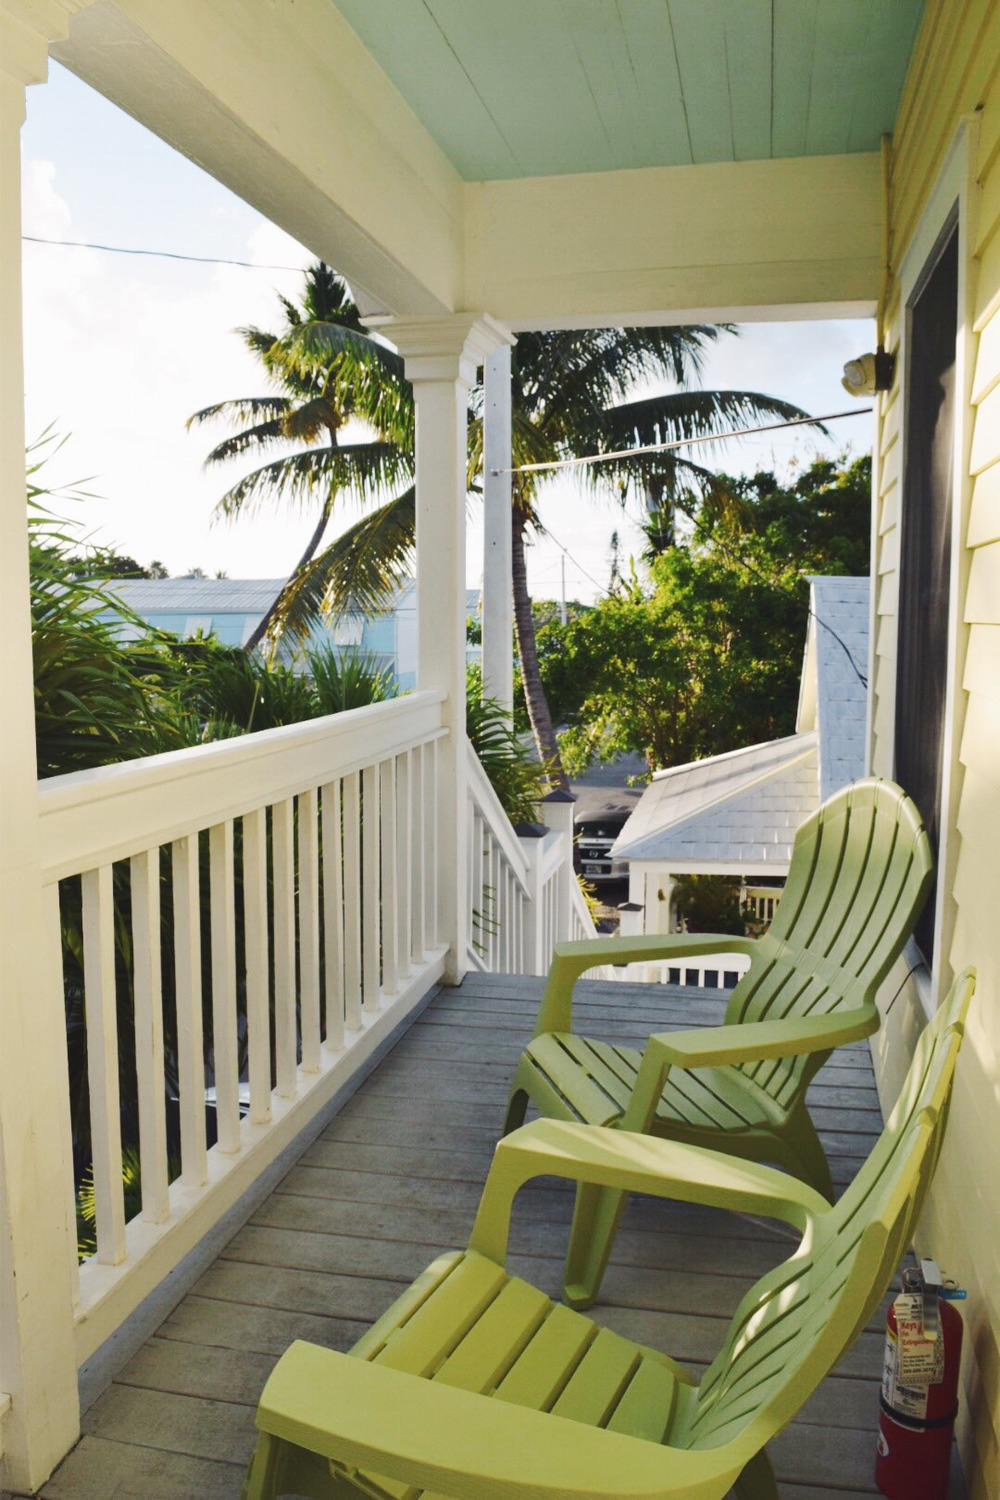 Key West, Florida. Relaxing, sunny vacation. Old Florida home with island views.